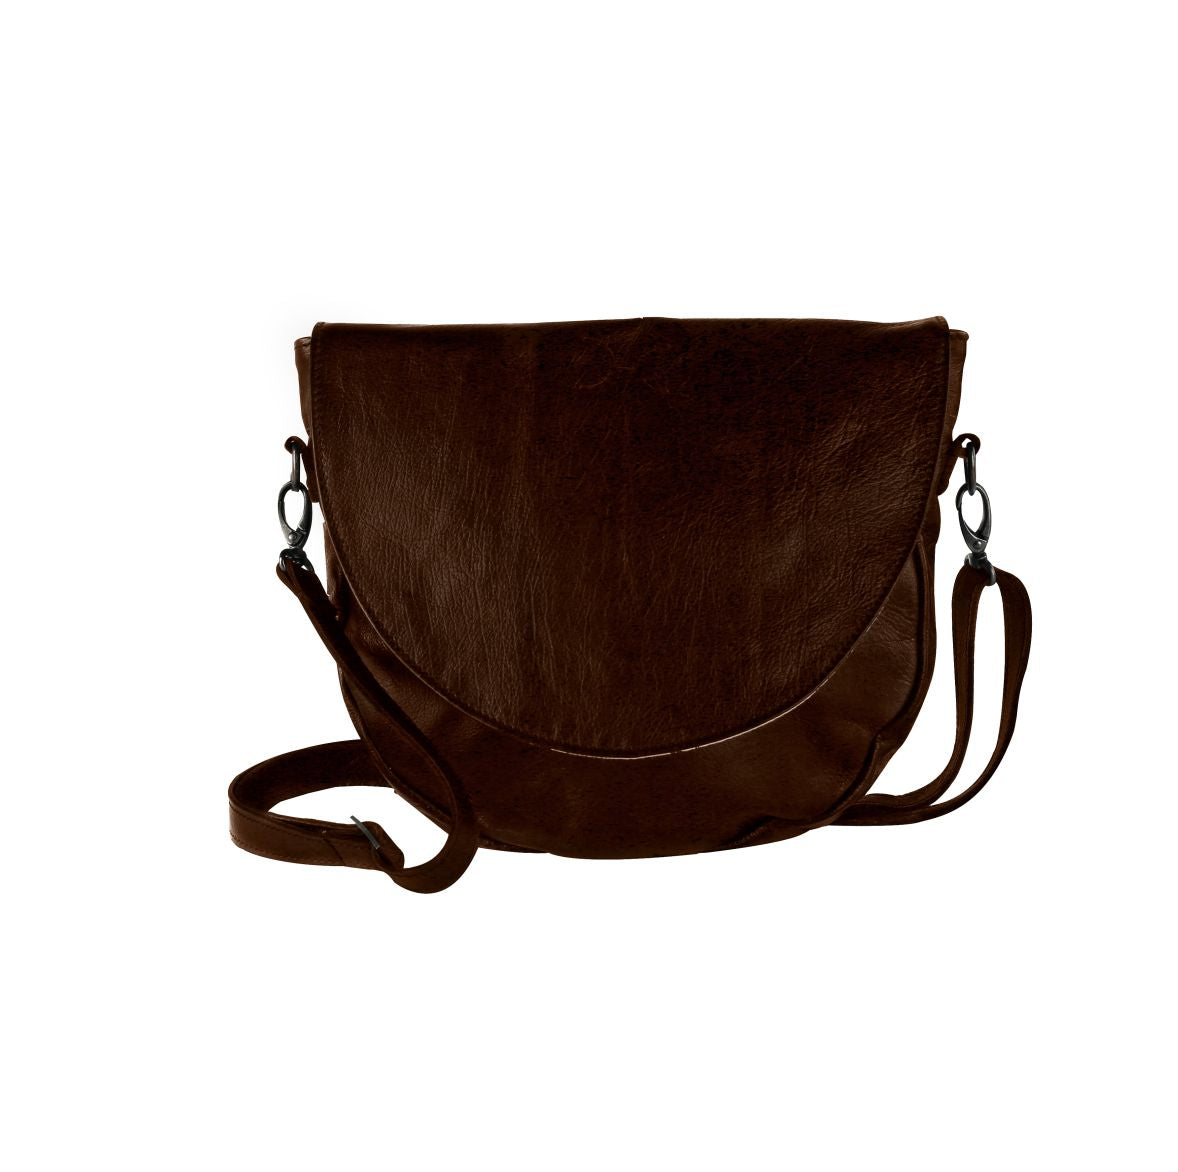 Thandana Messenger Saddle Sling Bag - Brown - Zufrique Boutique